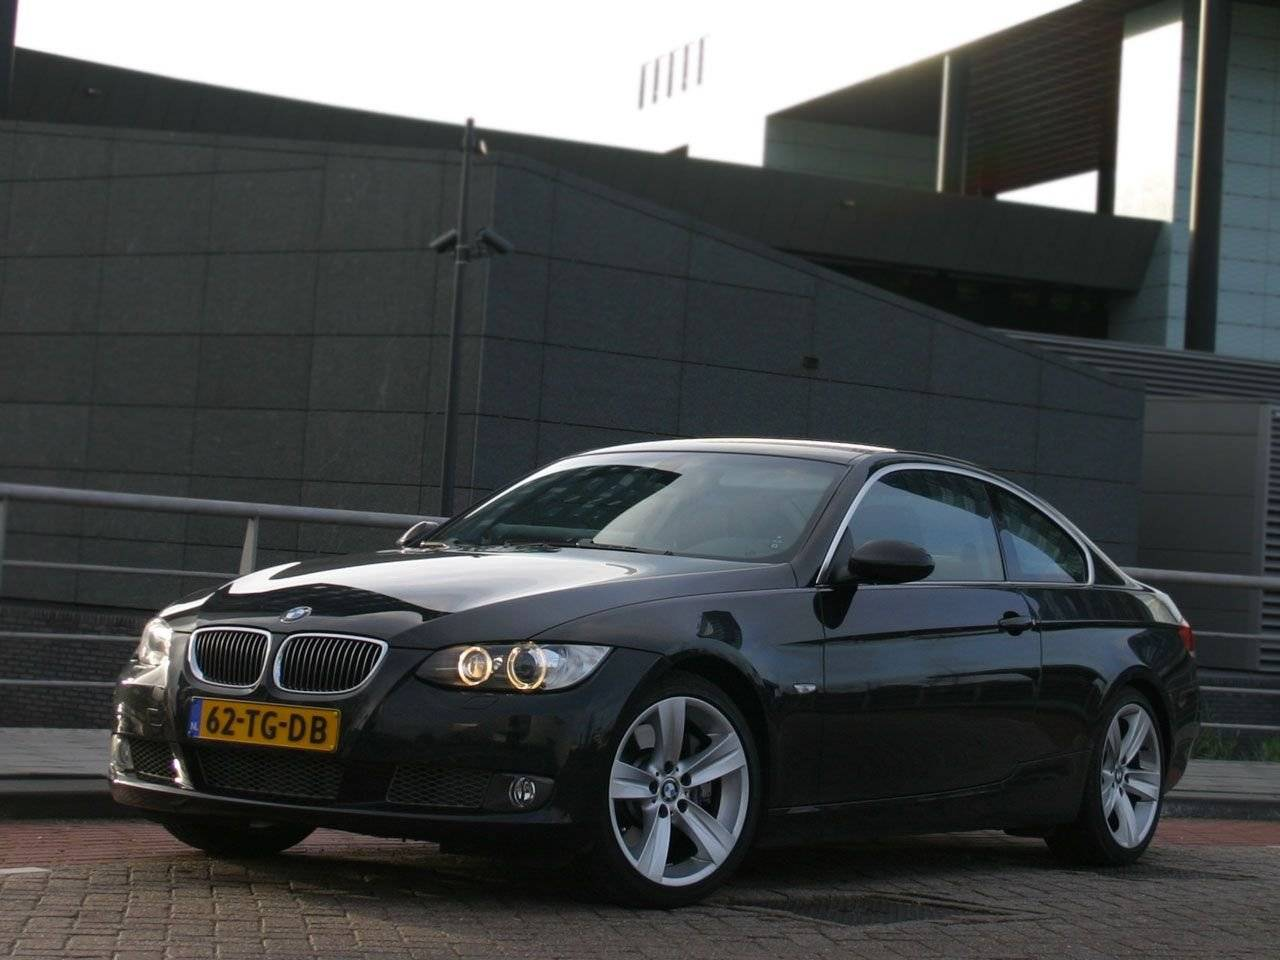 test een coup zoals het hoort bmw 3 serie coup autotests. Black Bedroom Furniture Sets. Home Design Ideas